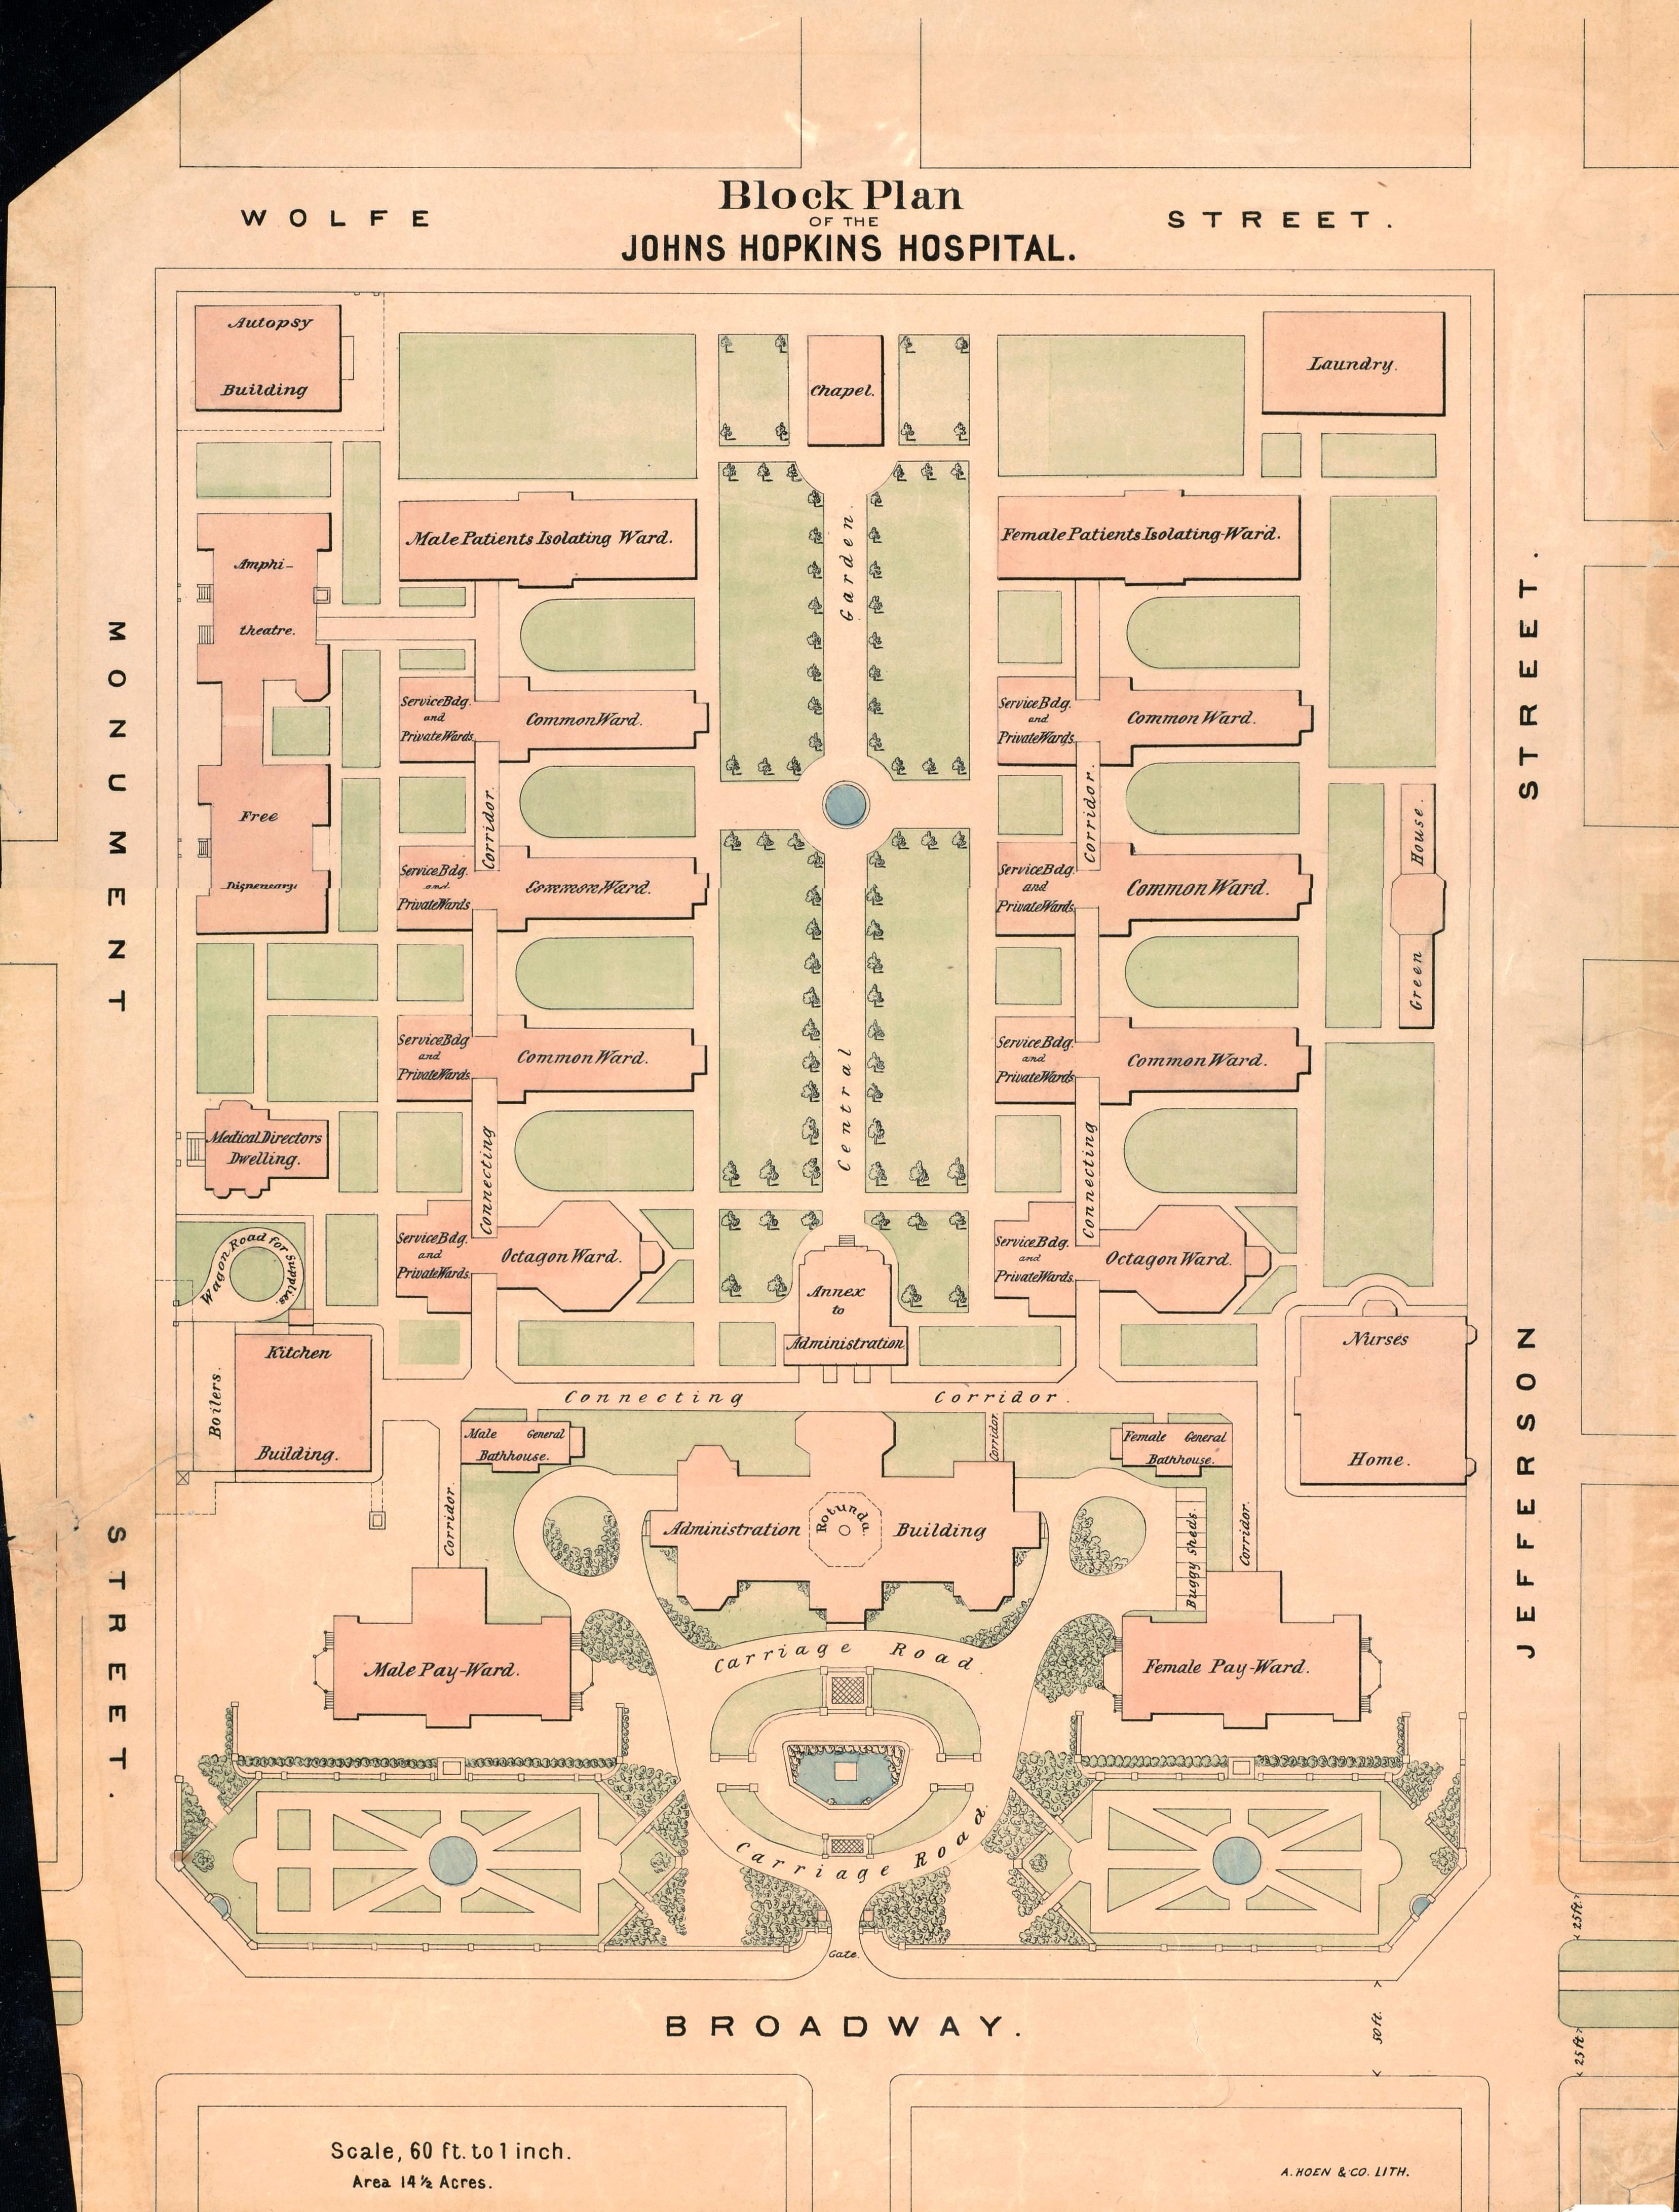 Here's a cool old map from 1877 showing the layout of Johns Hopkins on